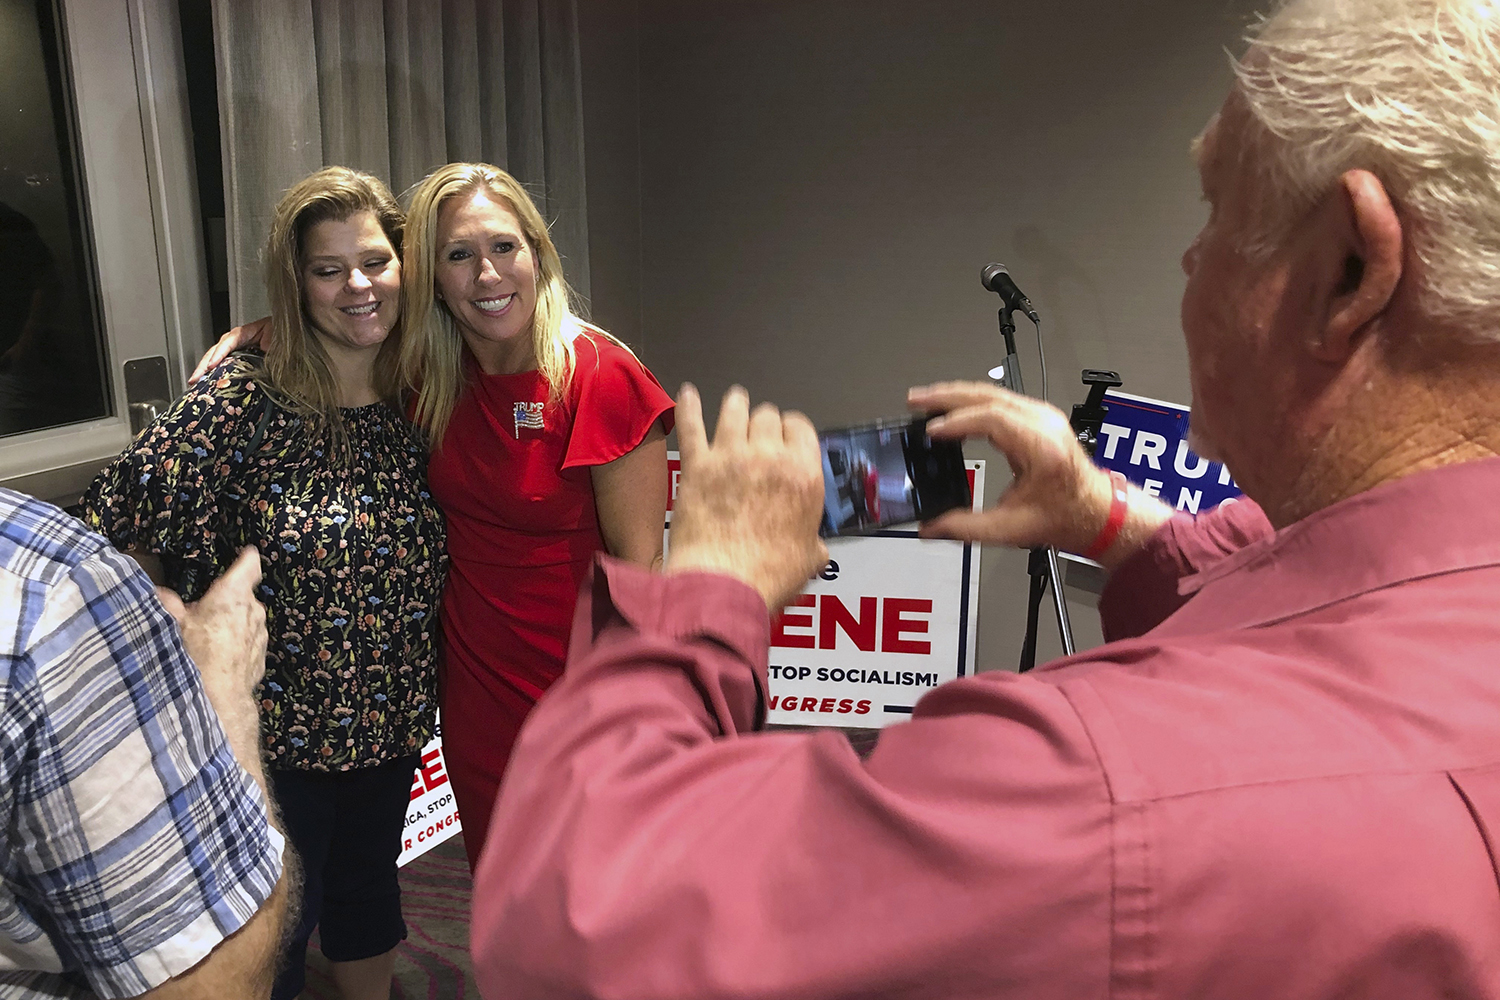 Supporters take photos with Marjorie Taylor Greene (in red) in Rome, Georgia, on Aug. 11. Greene, a QAnon supporter, won the GOP nomination for northwest Georgia's 14th U.S. Congressional District.